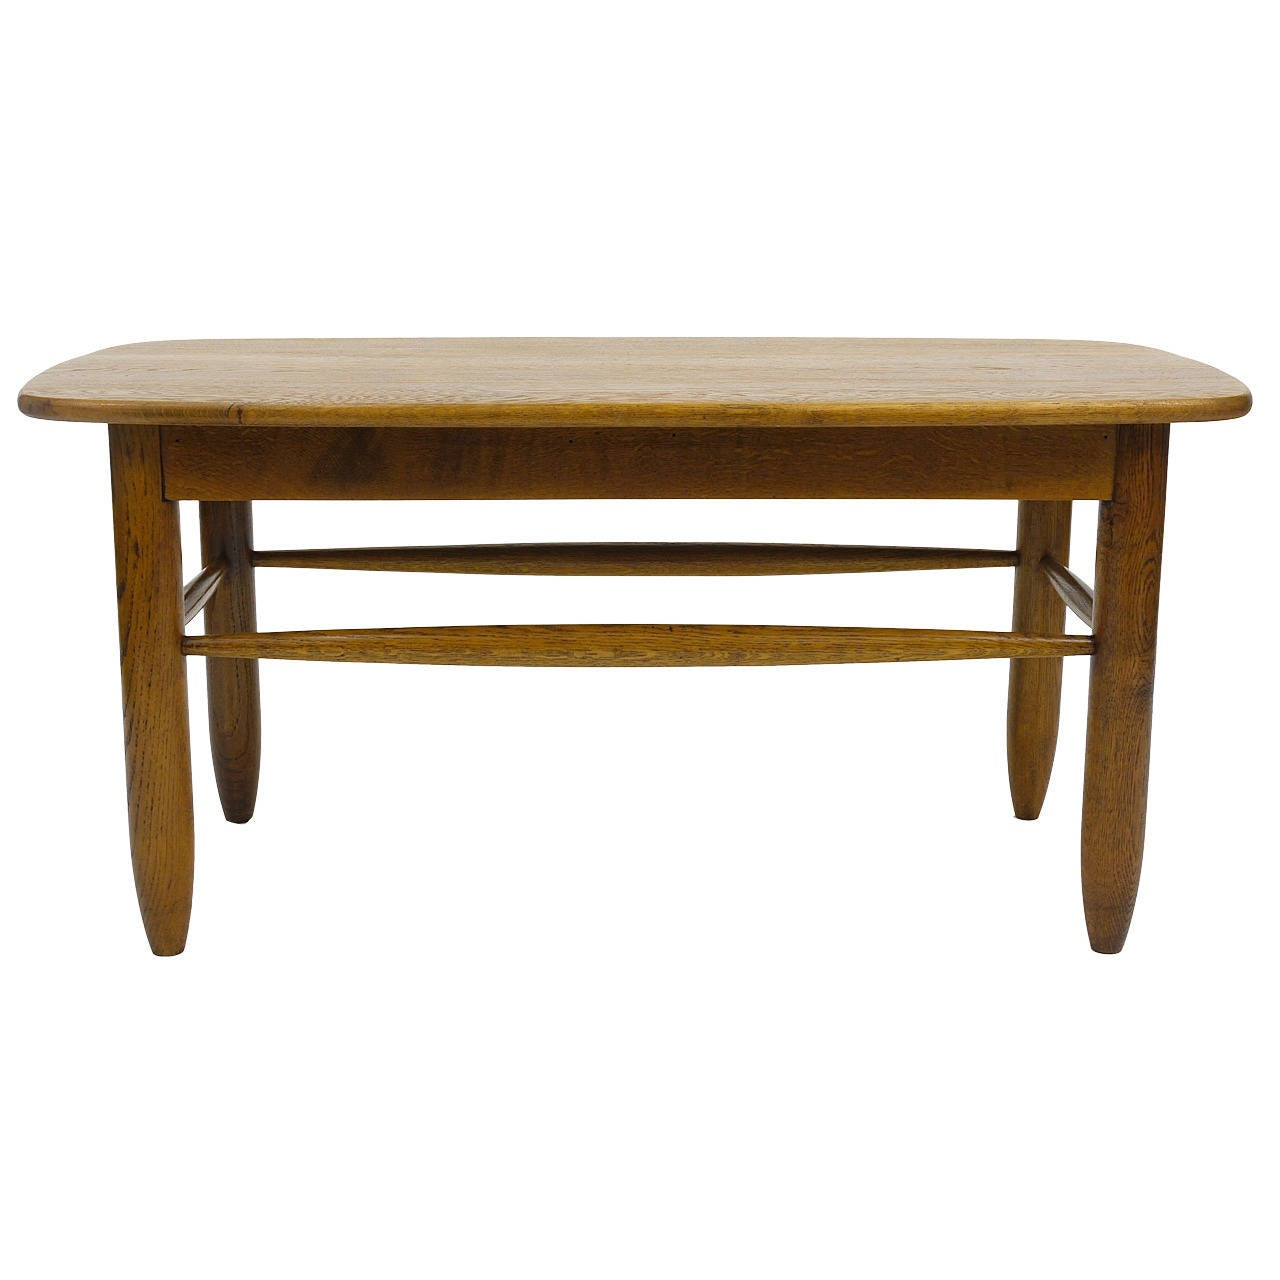 French Mid-Century Coffee Table Attr. Charlotte Perriand, Wood, 1950s